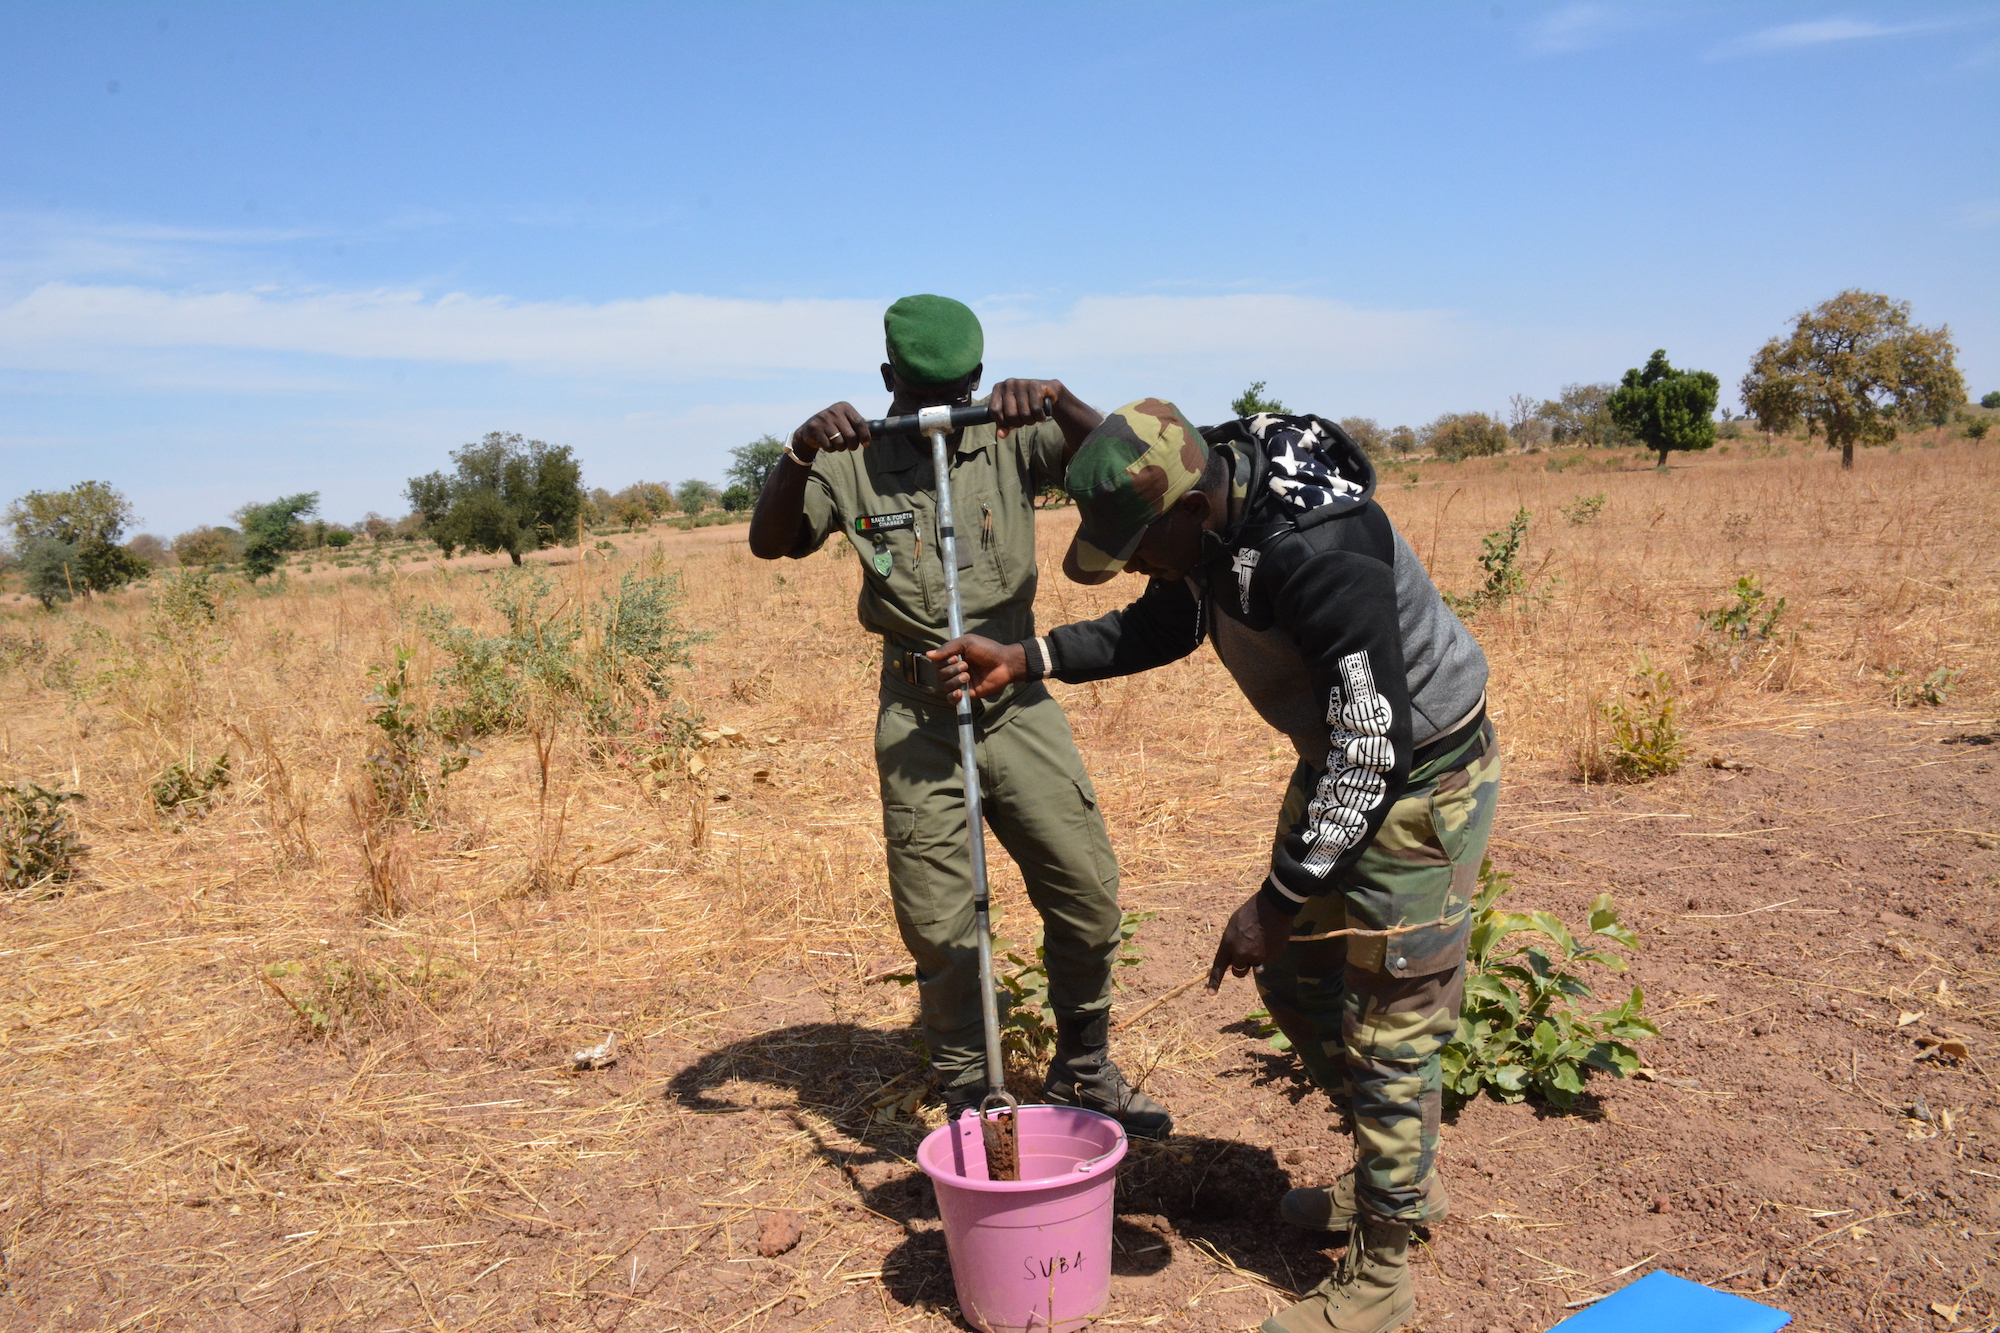 Forest Department officials taking soil samples to analyse land degradation indicators in Fatick Region, Senegal. Photo: World Agroforestry/ Gilberte Koffi